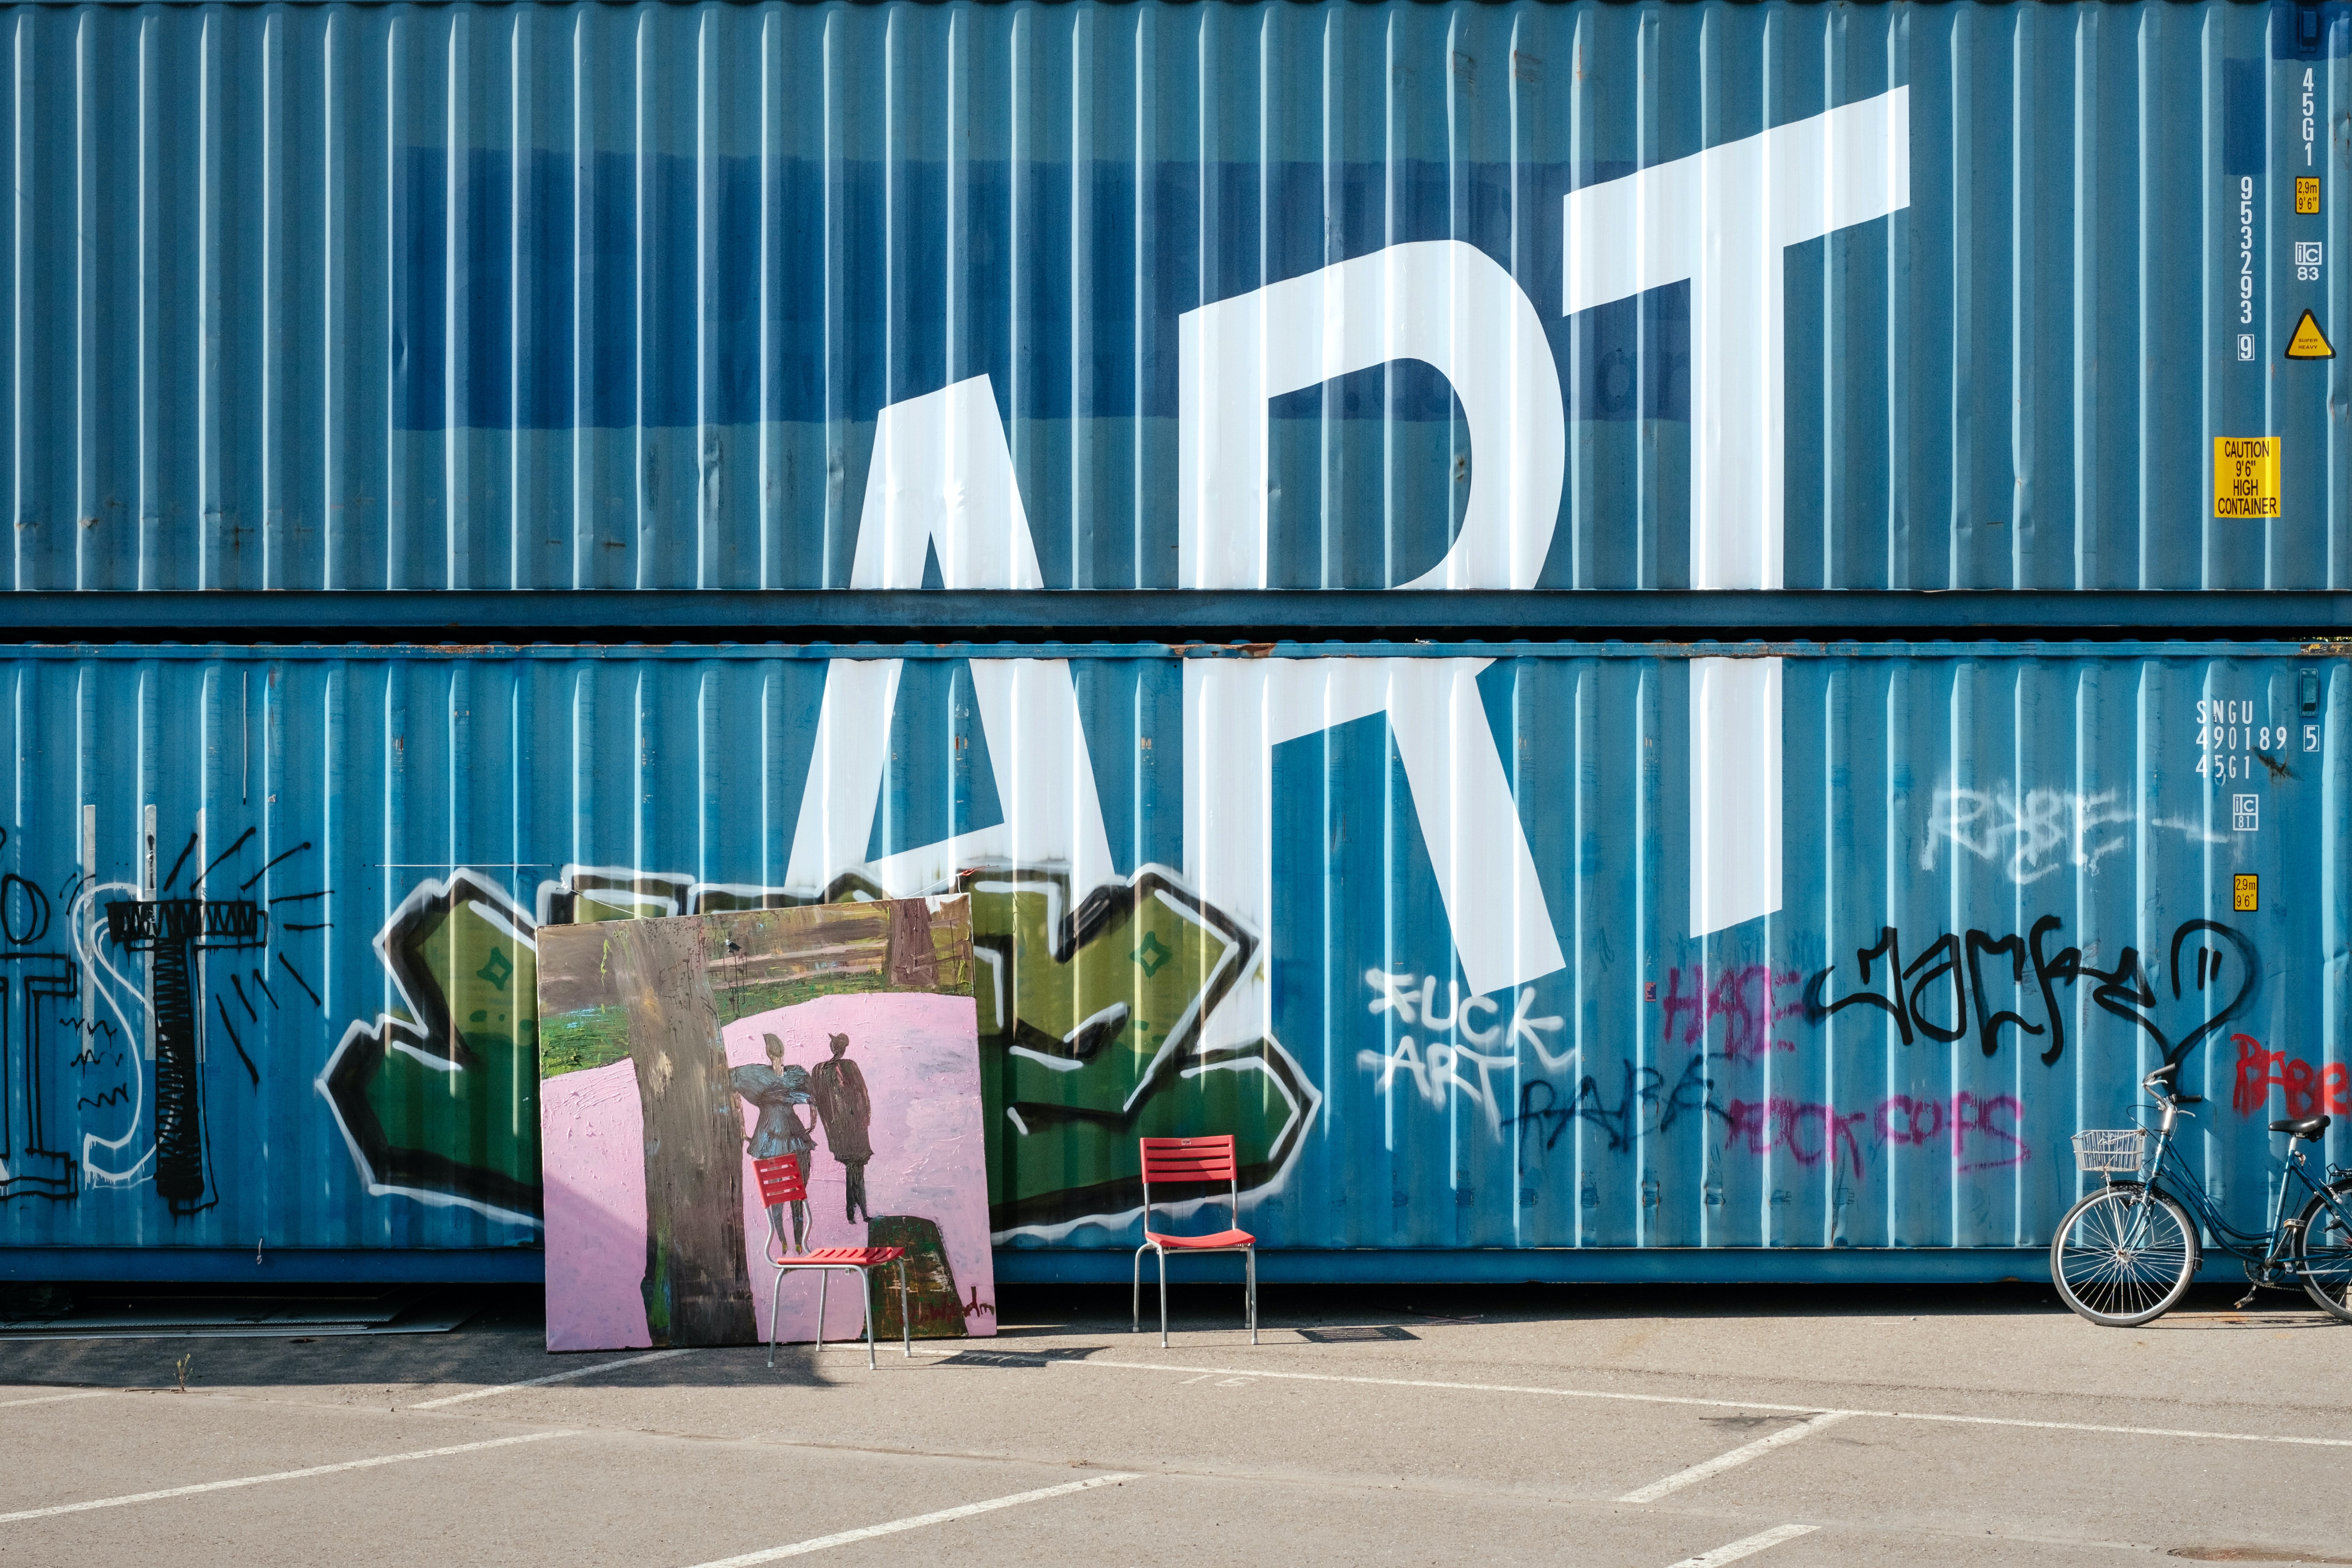 assorted-color graffiti on blue metal containers during daytime